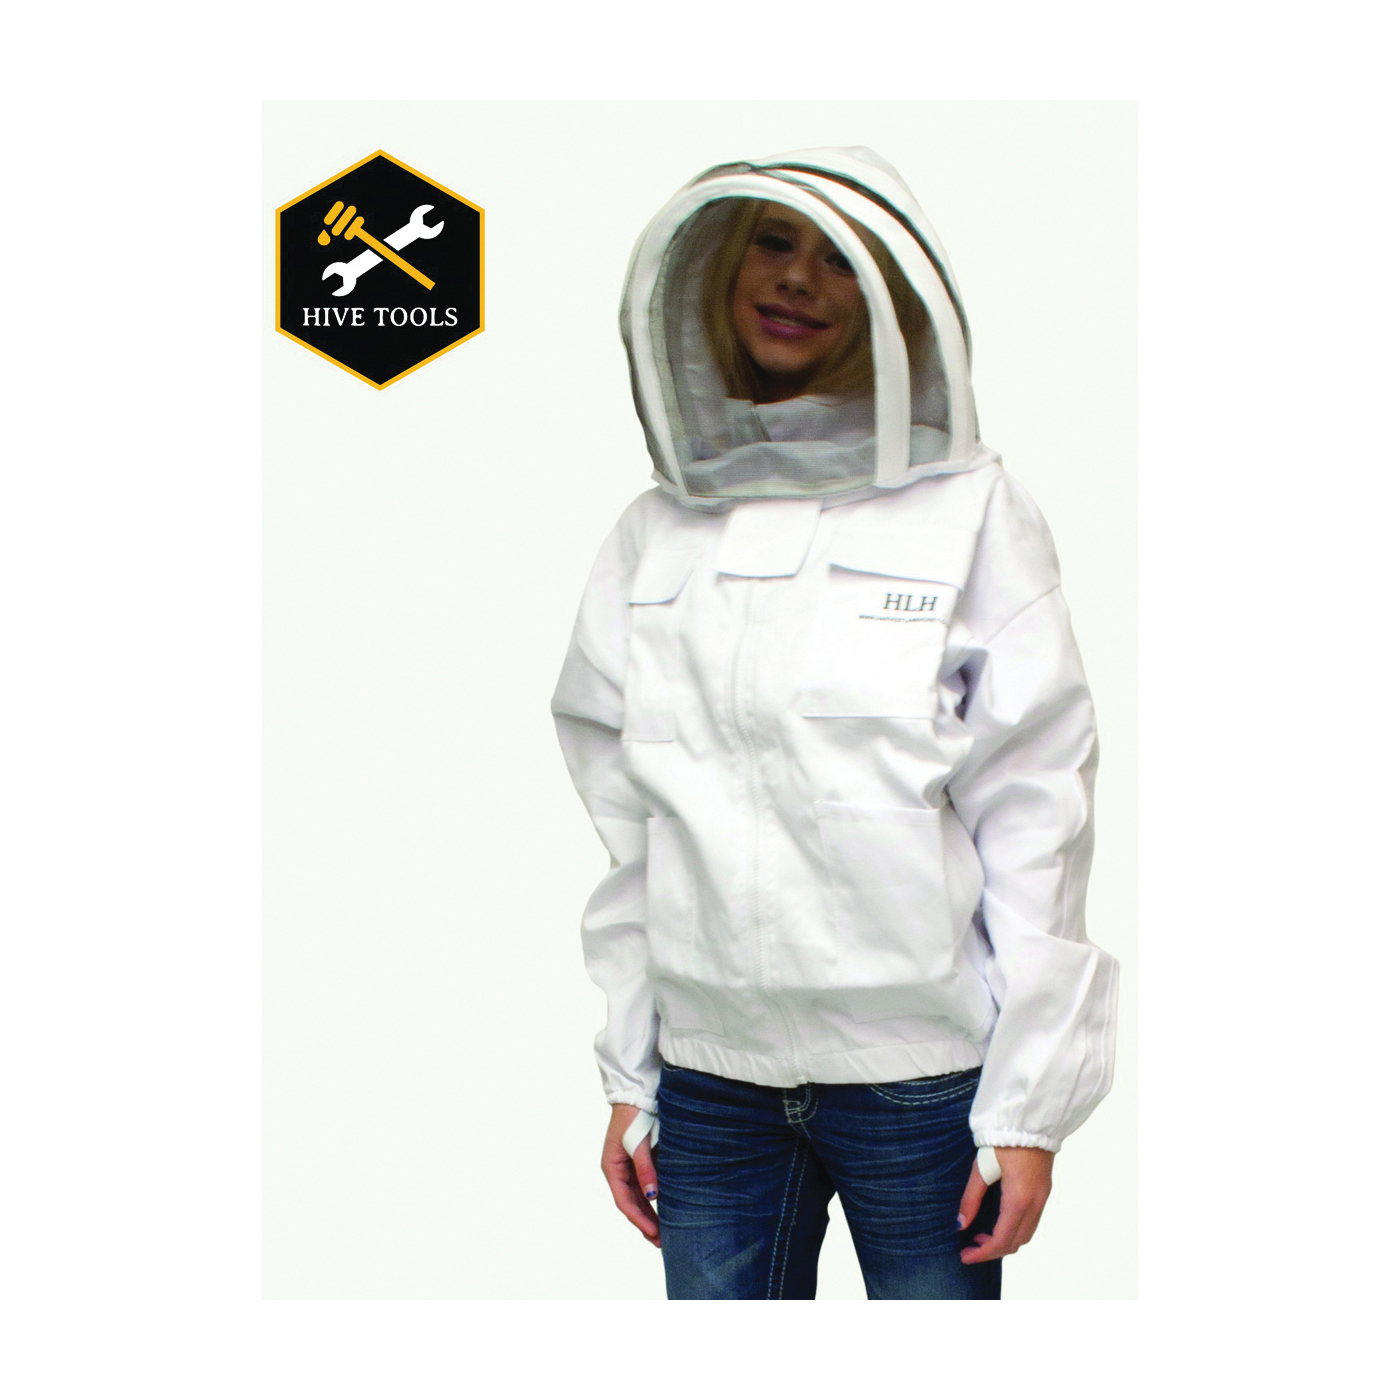 Picture of HARVEST LANE HONEY CLOTHSJXL-102 Beekeeper Jackets with Protective Hood, XL, Protective Hood, Zipper Closure, White